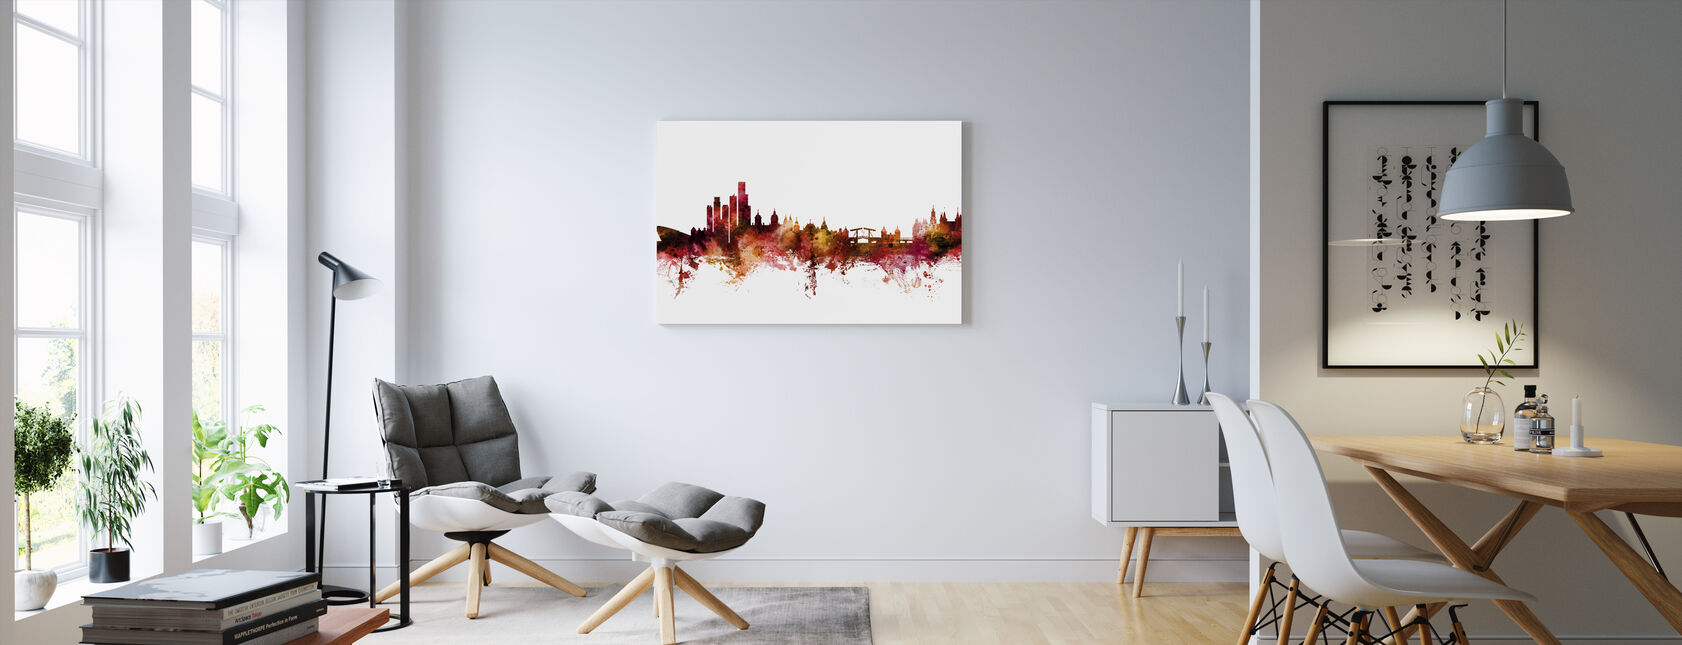 Amsterdam The Netherlands Skyline - Canvas print - Living Room